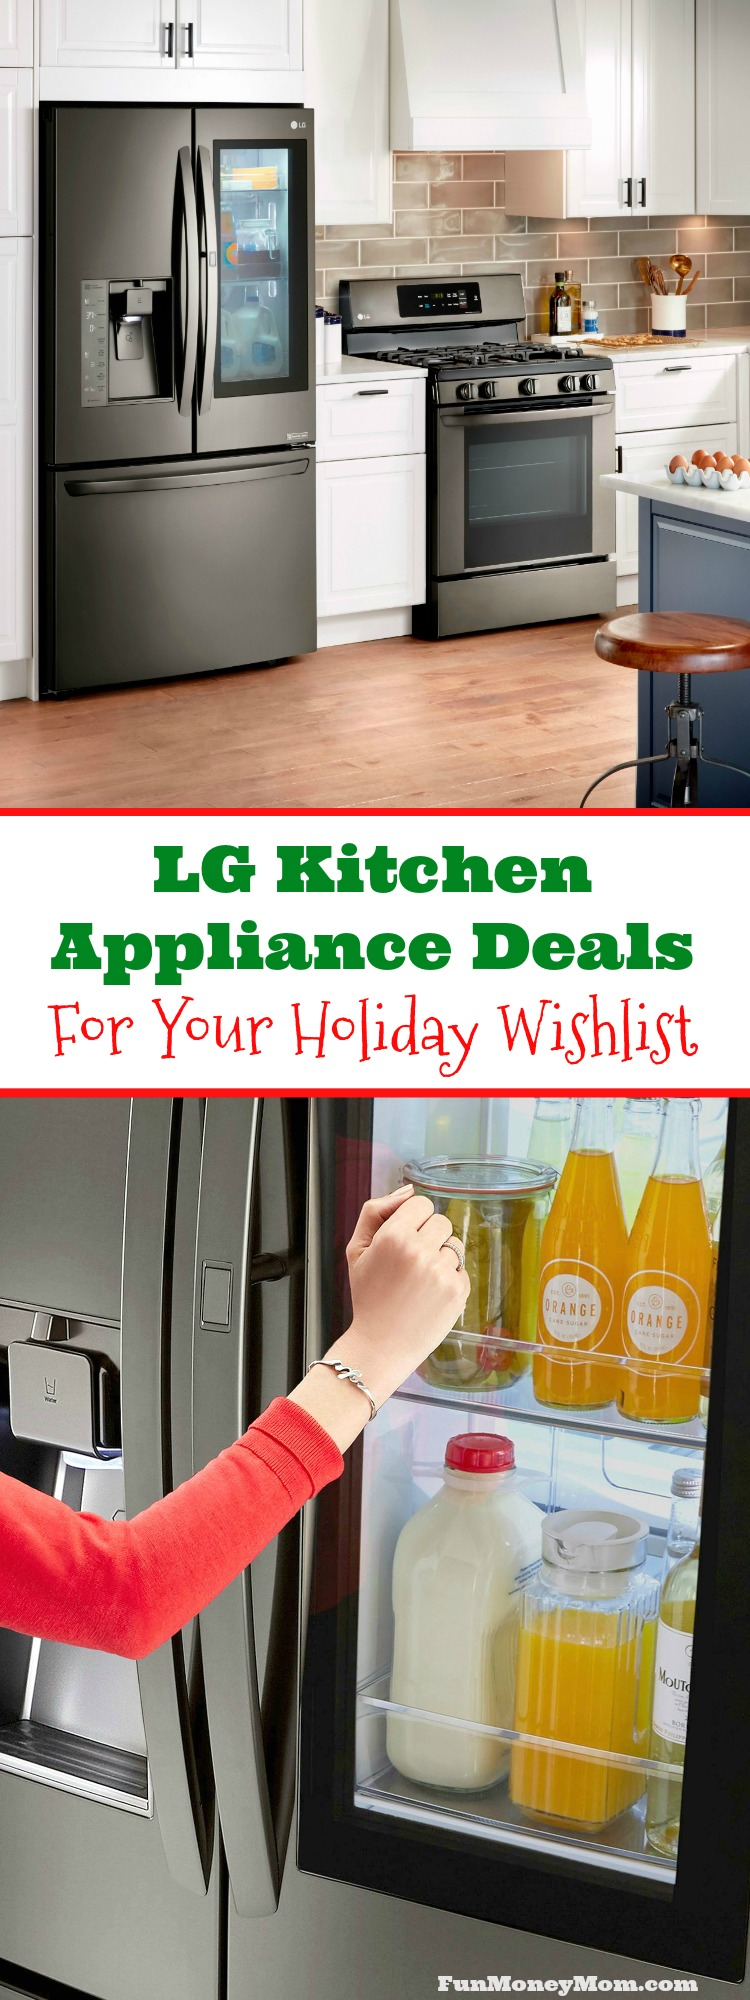 It's always fun to get new kitchen appliances, right? If you have new appliances on your holiday wishlist, you're going to want to check out these awesome LG kitchen appliance deals.